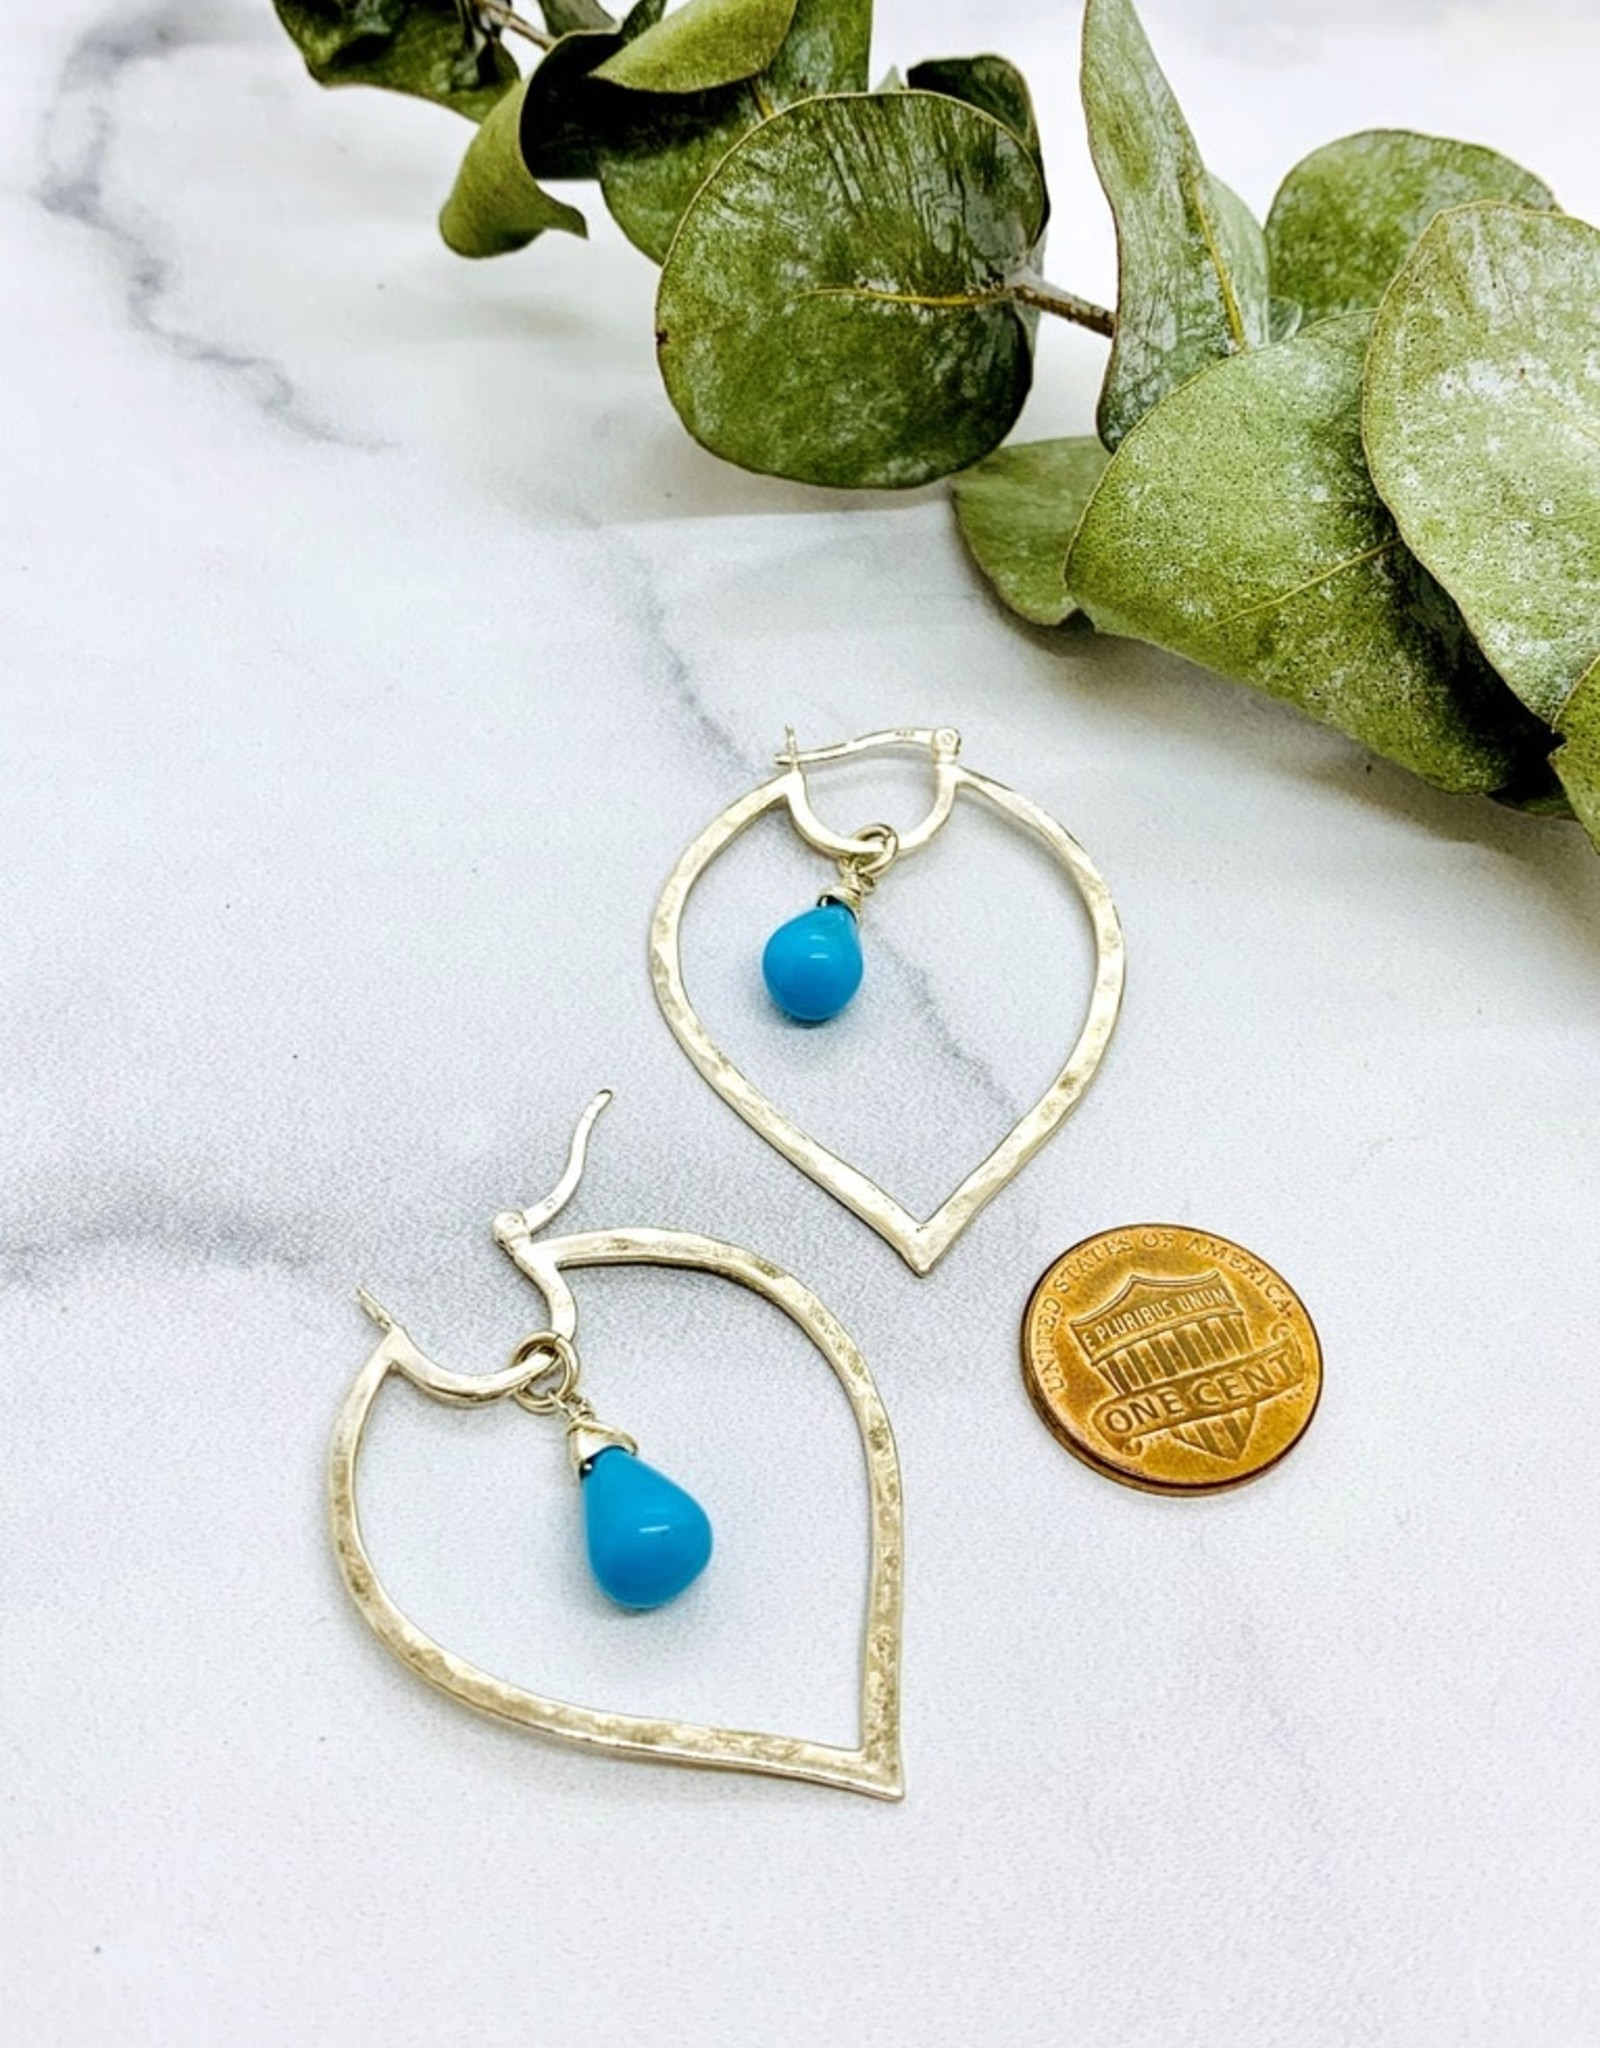 Handmade Silver Earrings with hammered marquis hoop, turquoise briolette